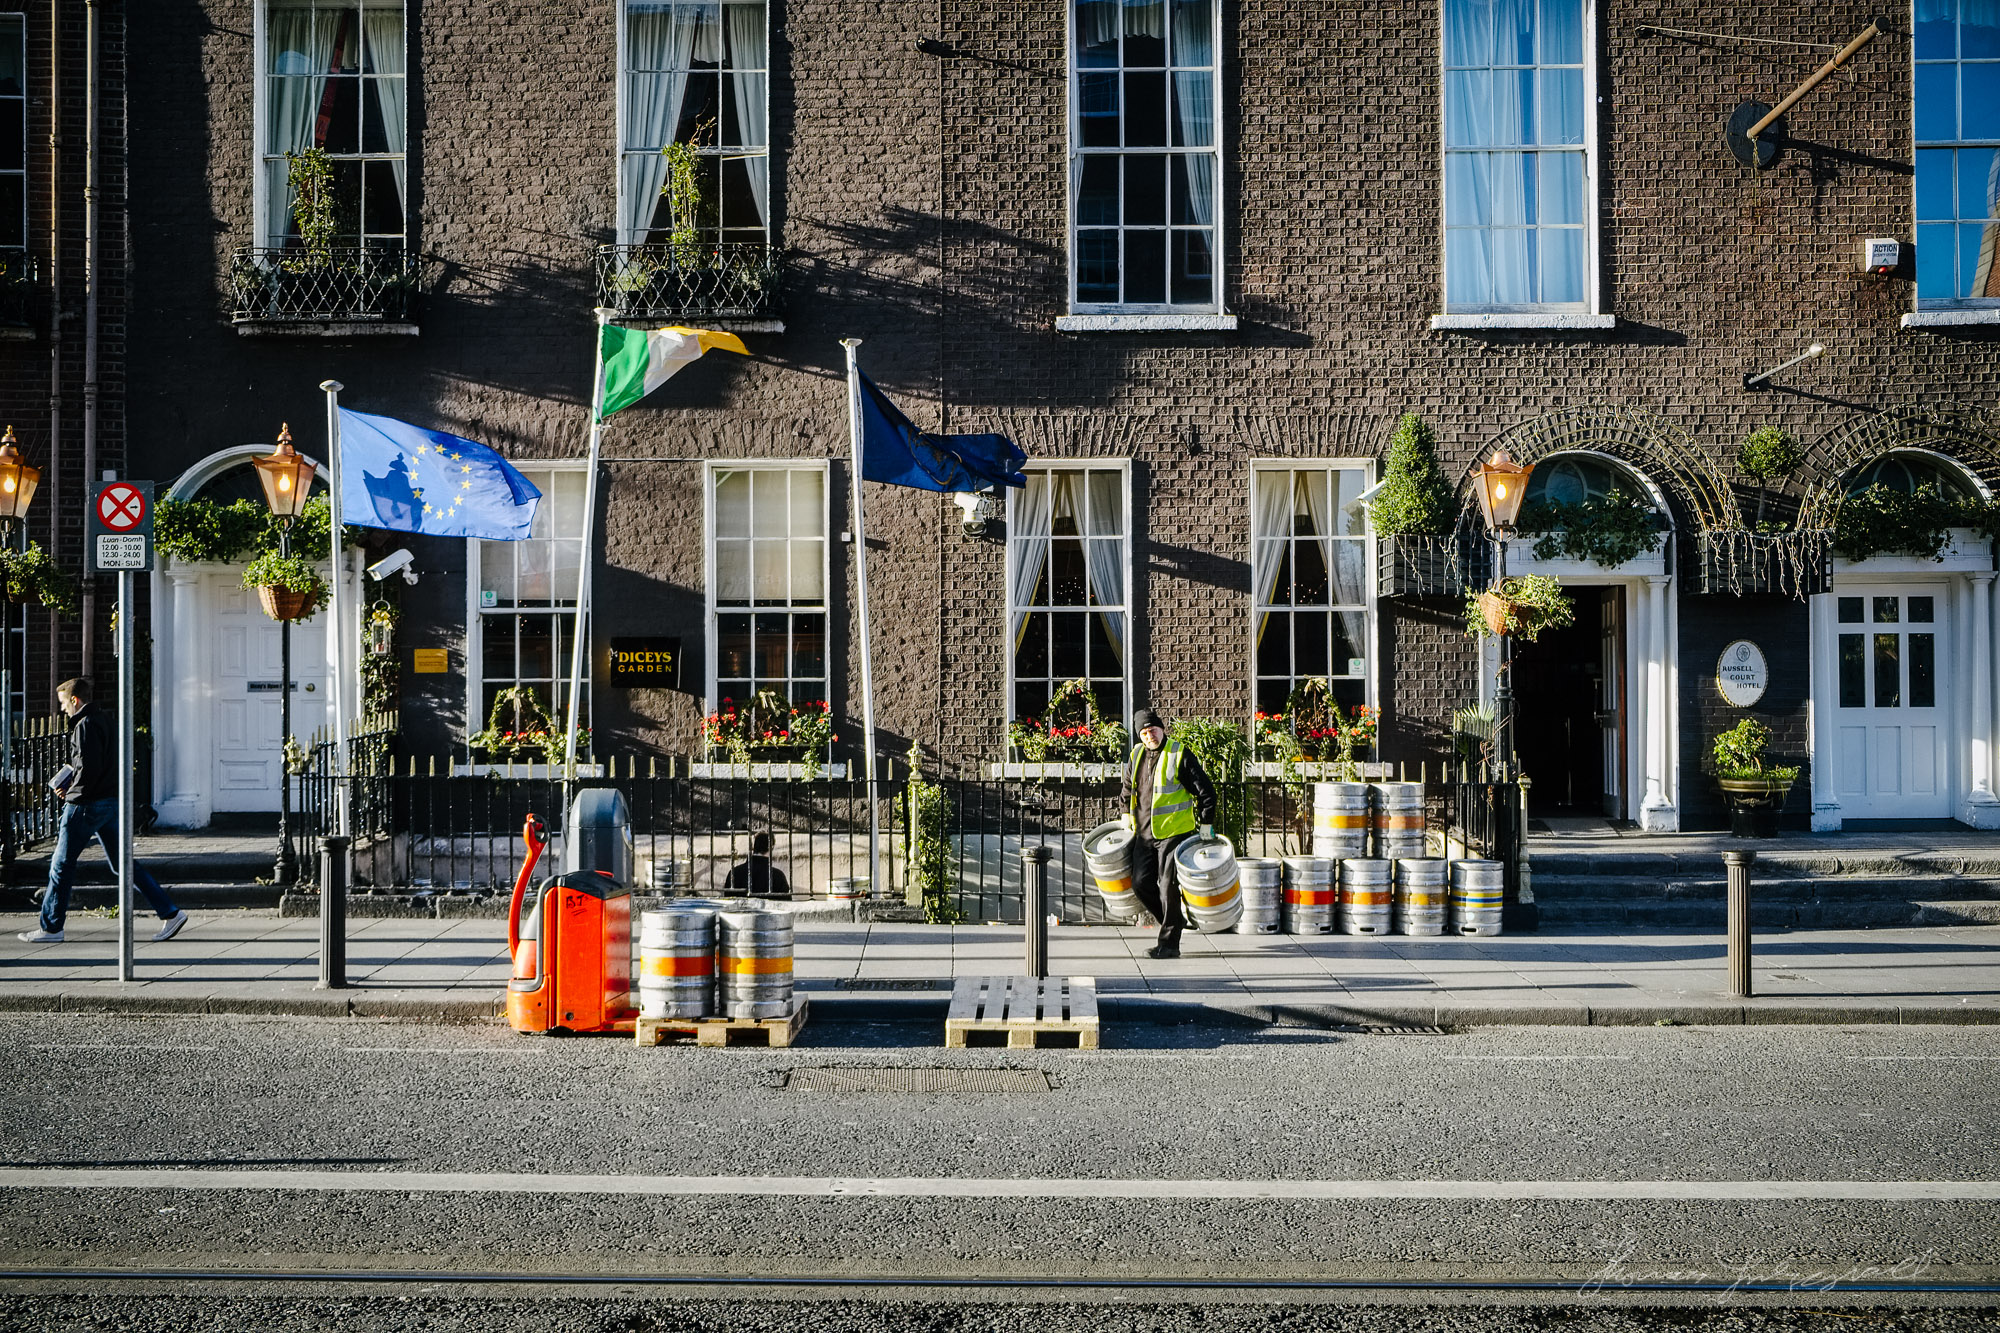 Beer Delivery on Harcourt Street